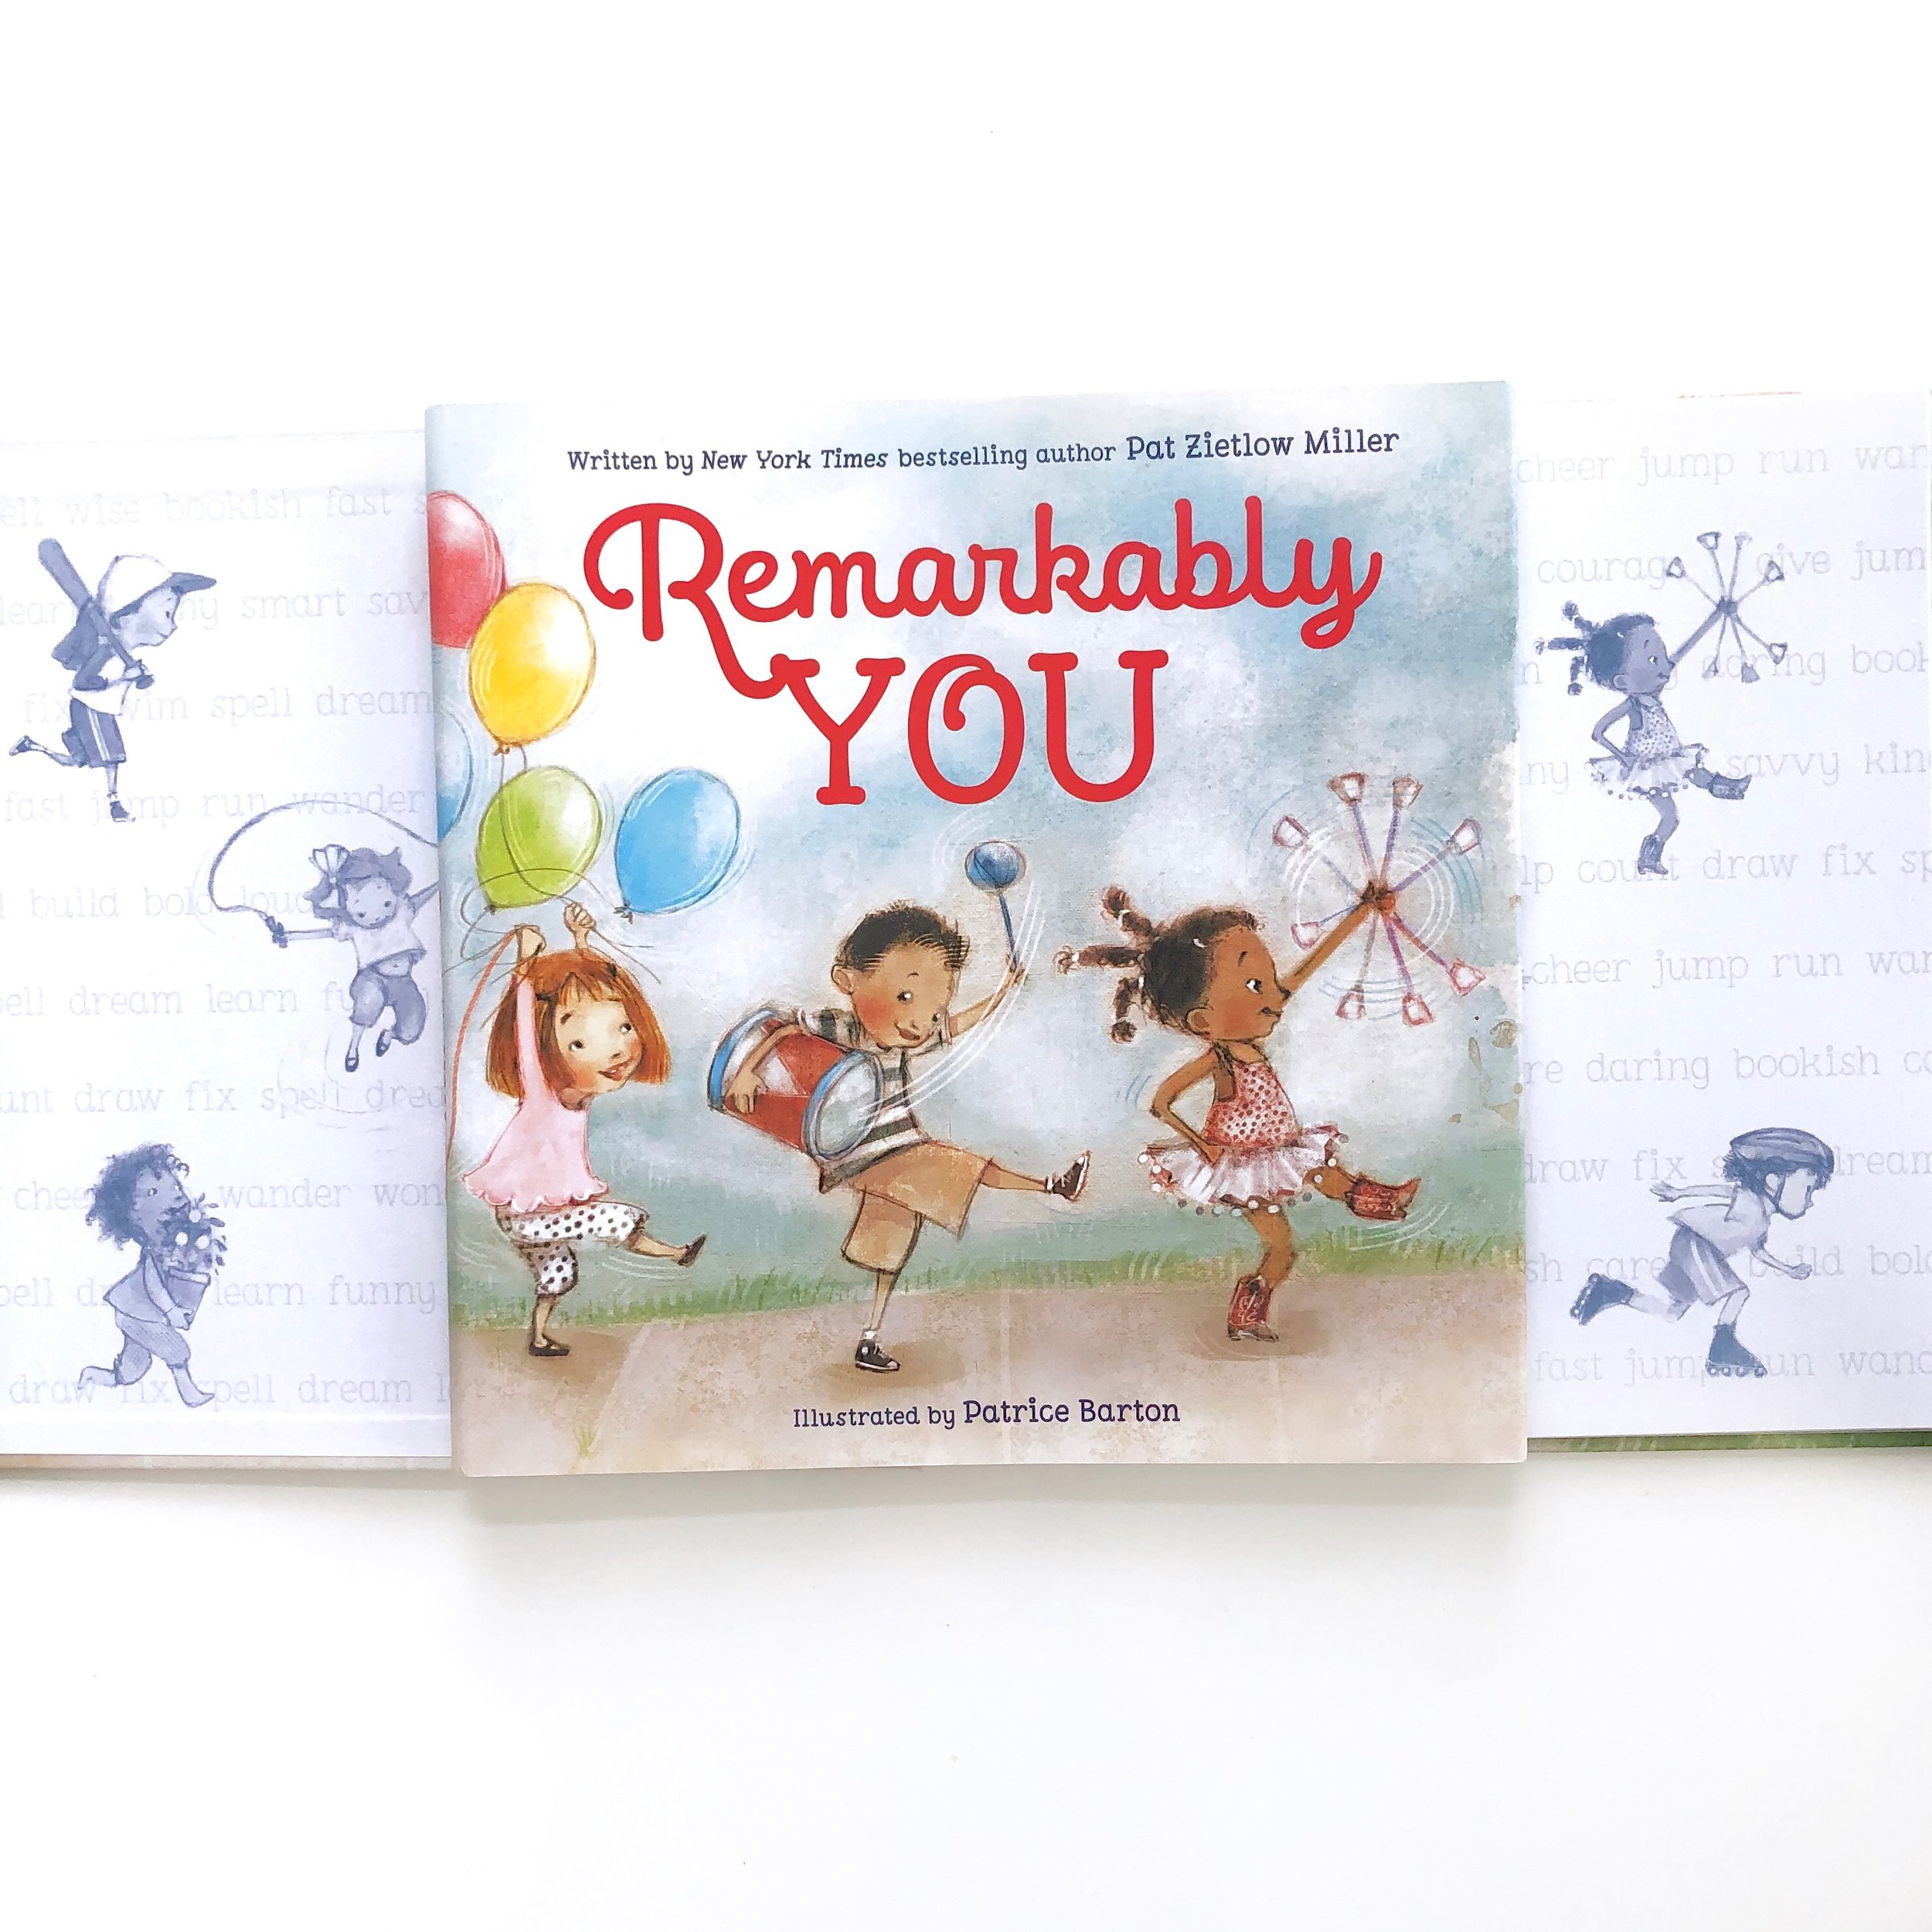 Self esteem books for kids, celebrate self with REMARKABLY YOU!